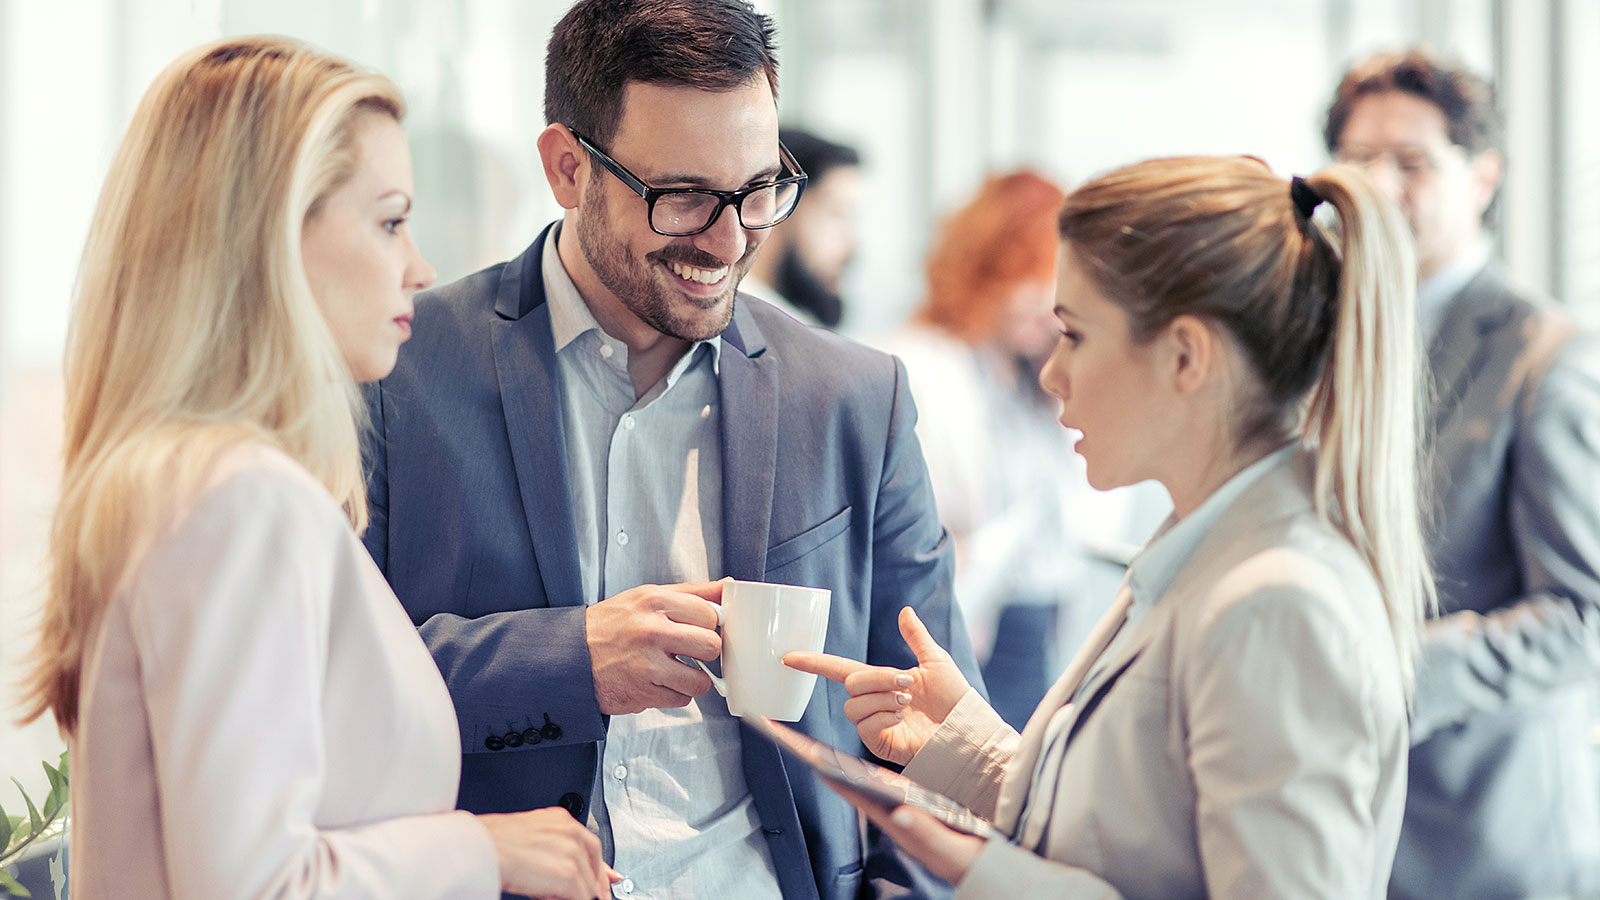 The trick no one tells you about networking